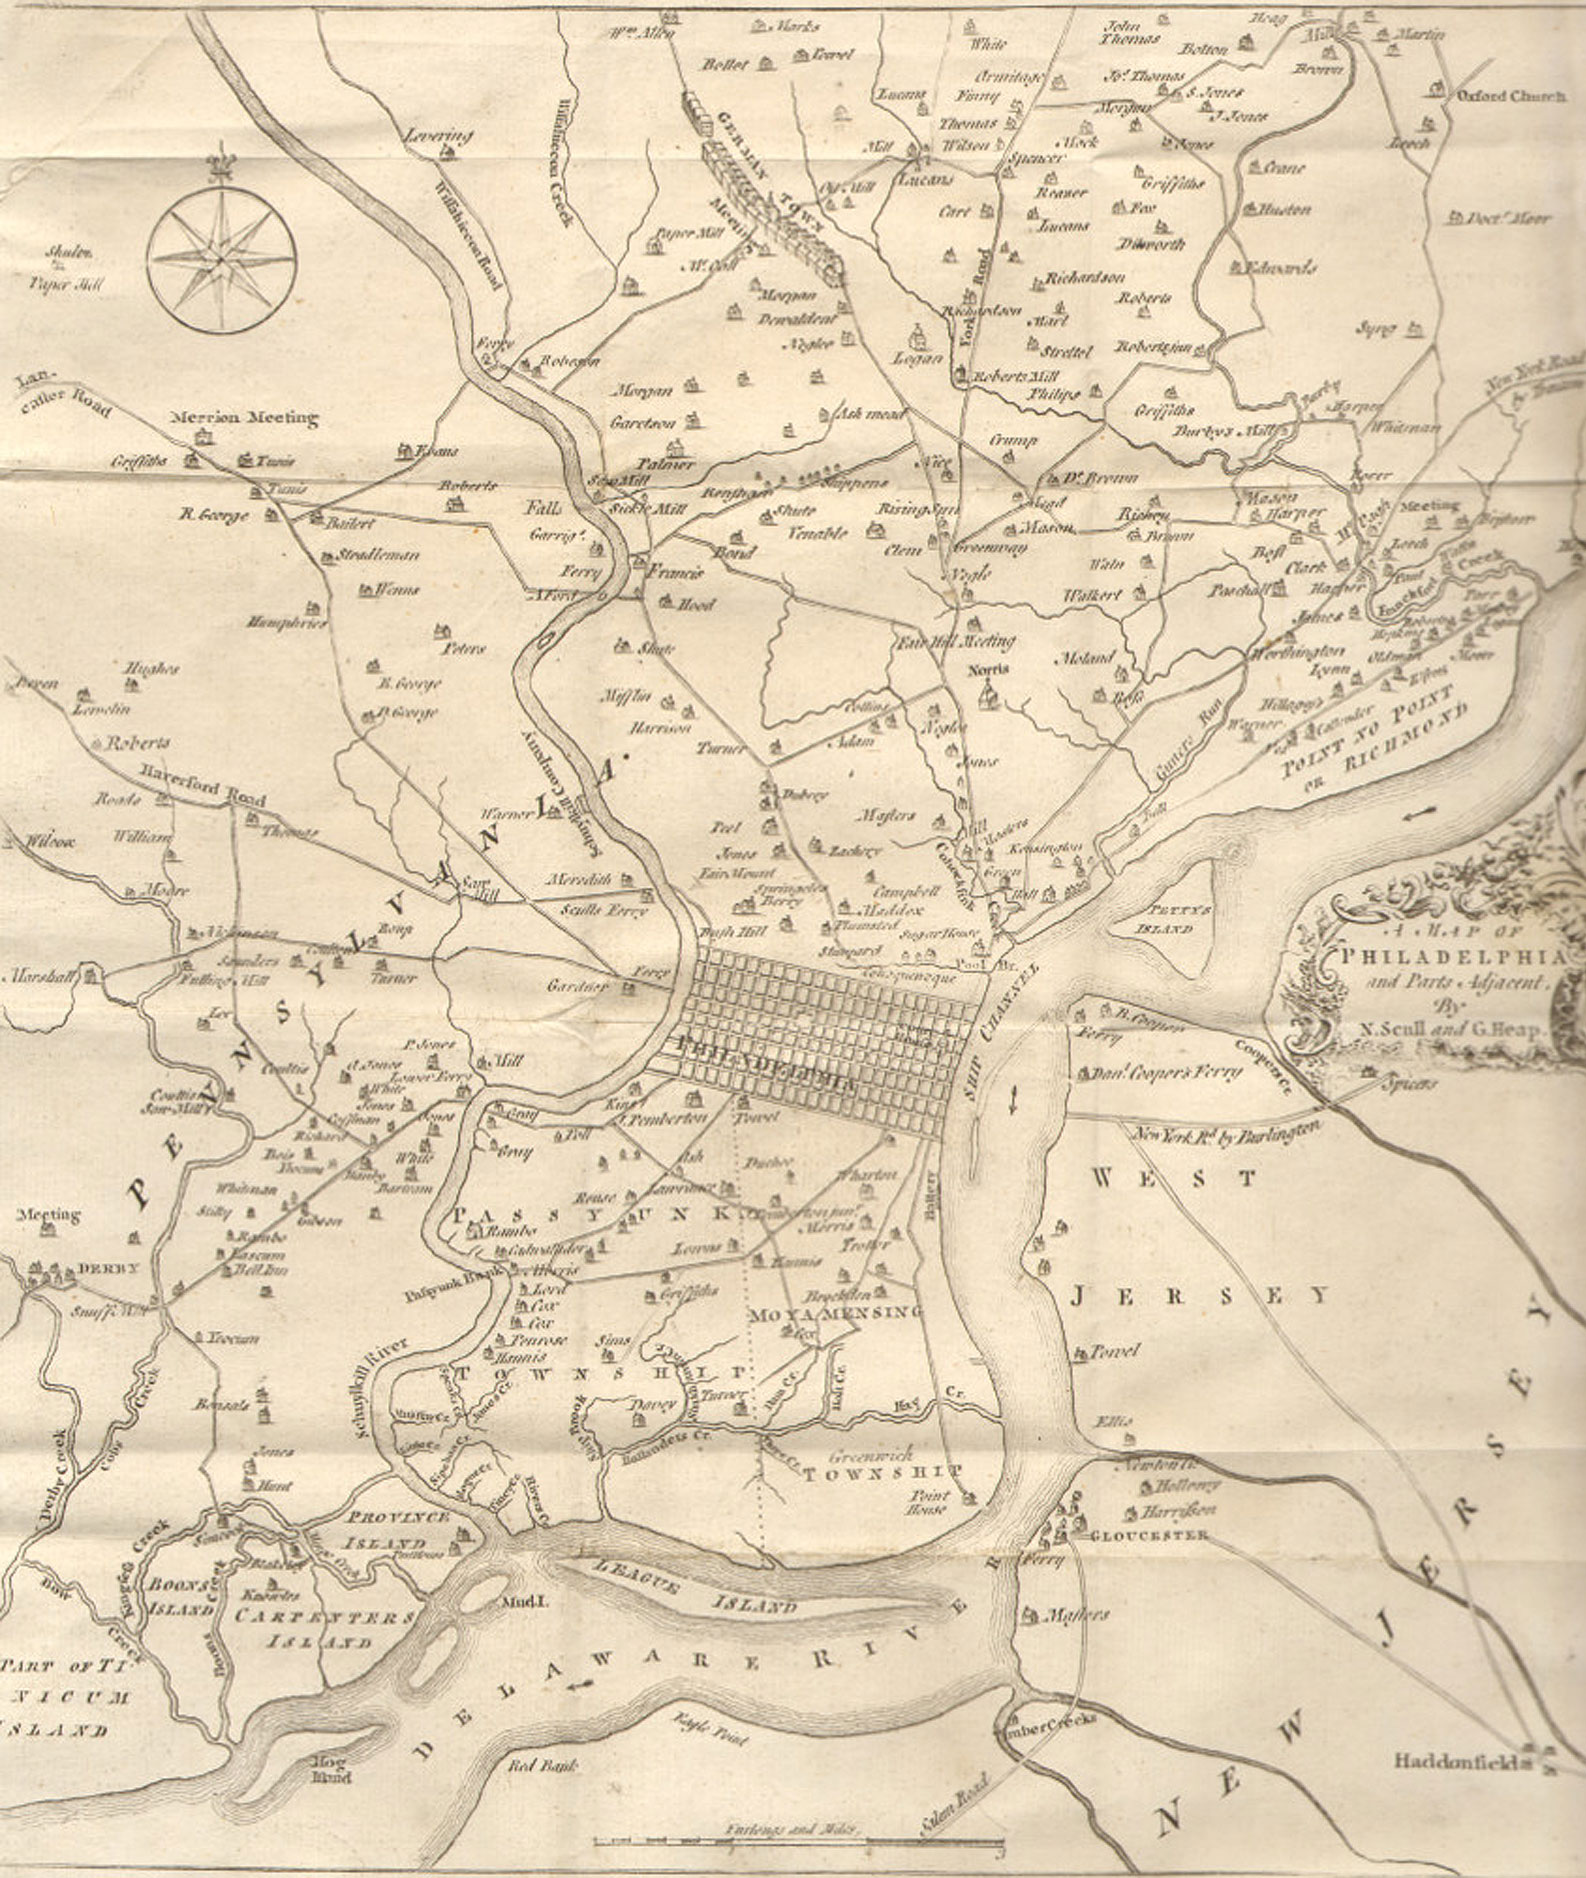 fig. 2_ Mid-18th century map of Philadelphia showing the grid as it was sited between the Delaware and Schuykill rivers.